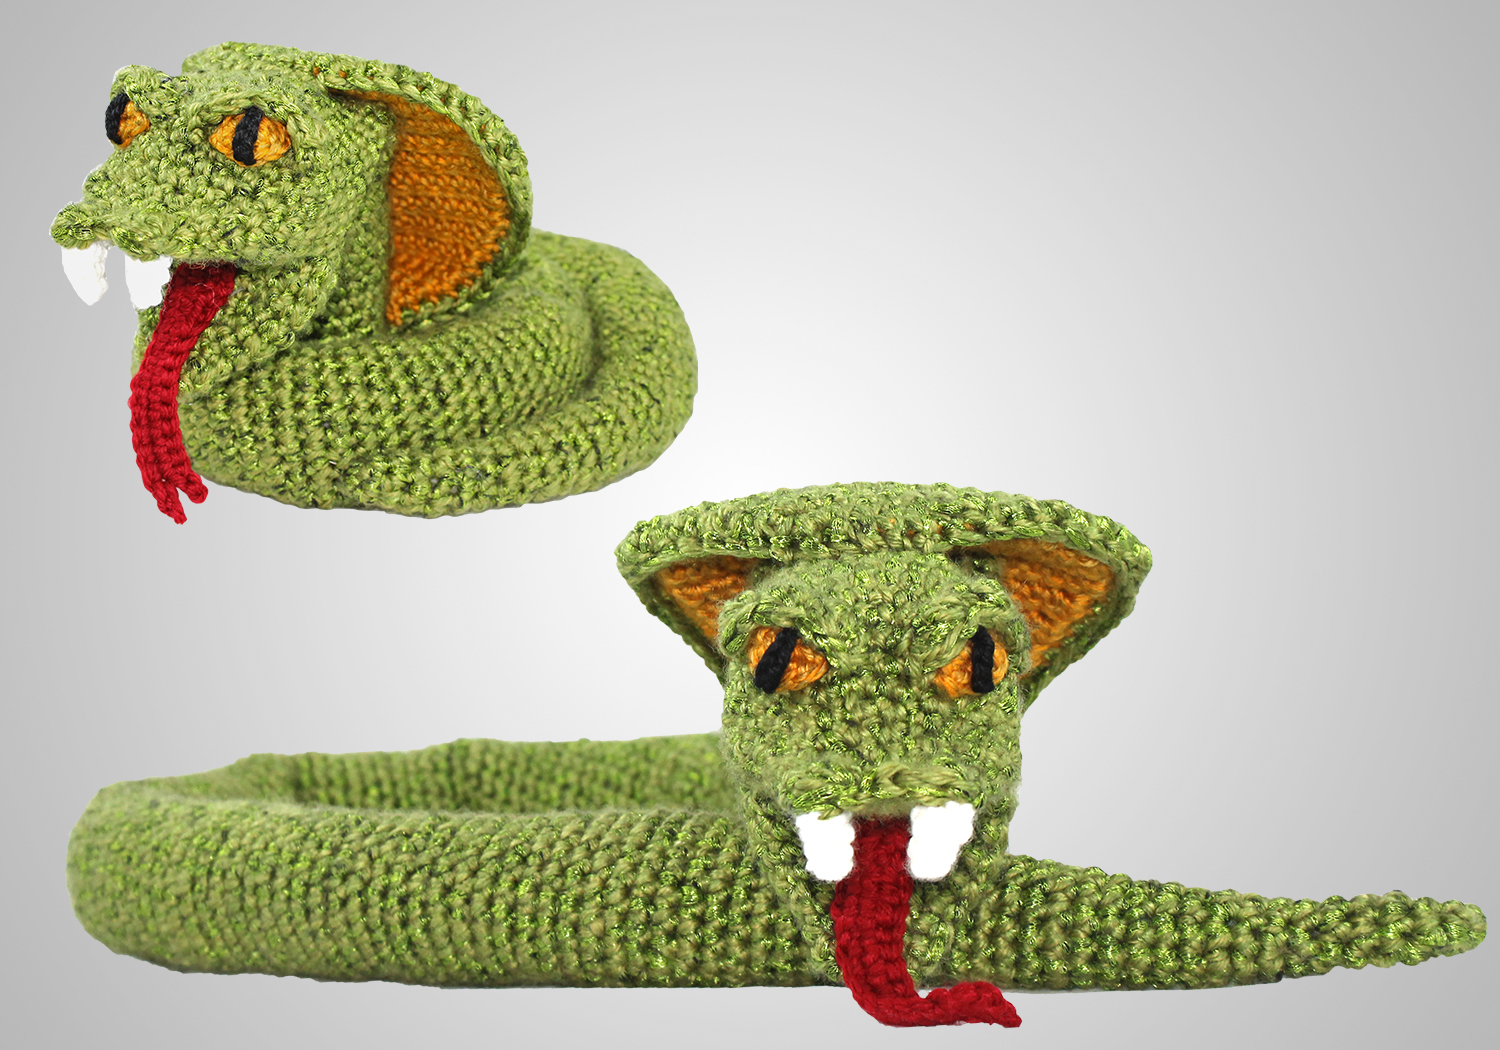 Crochet Cobra Toy Pattern